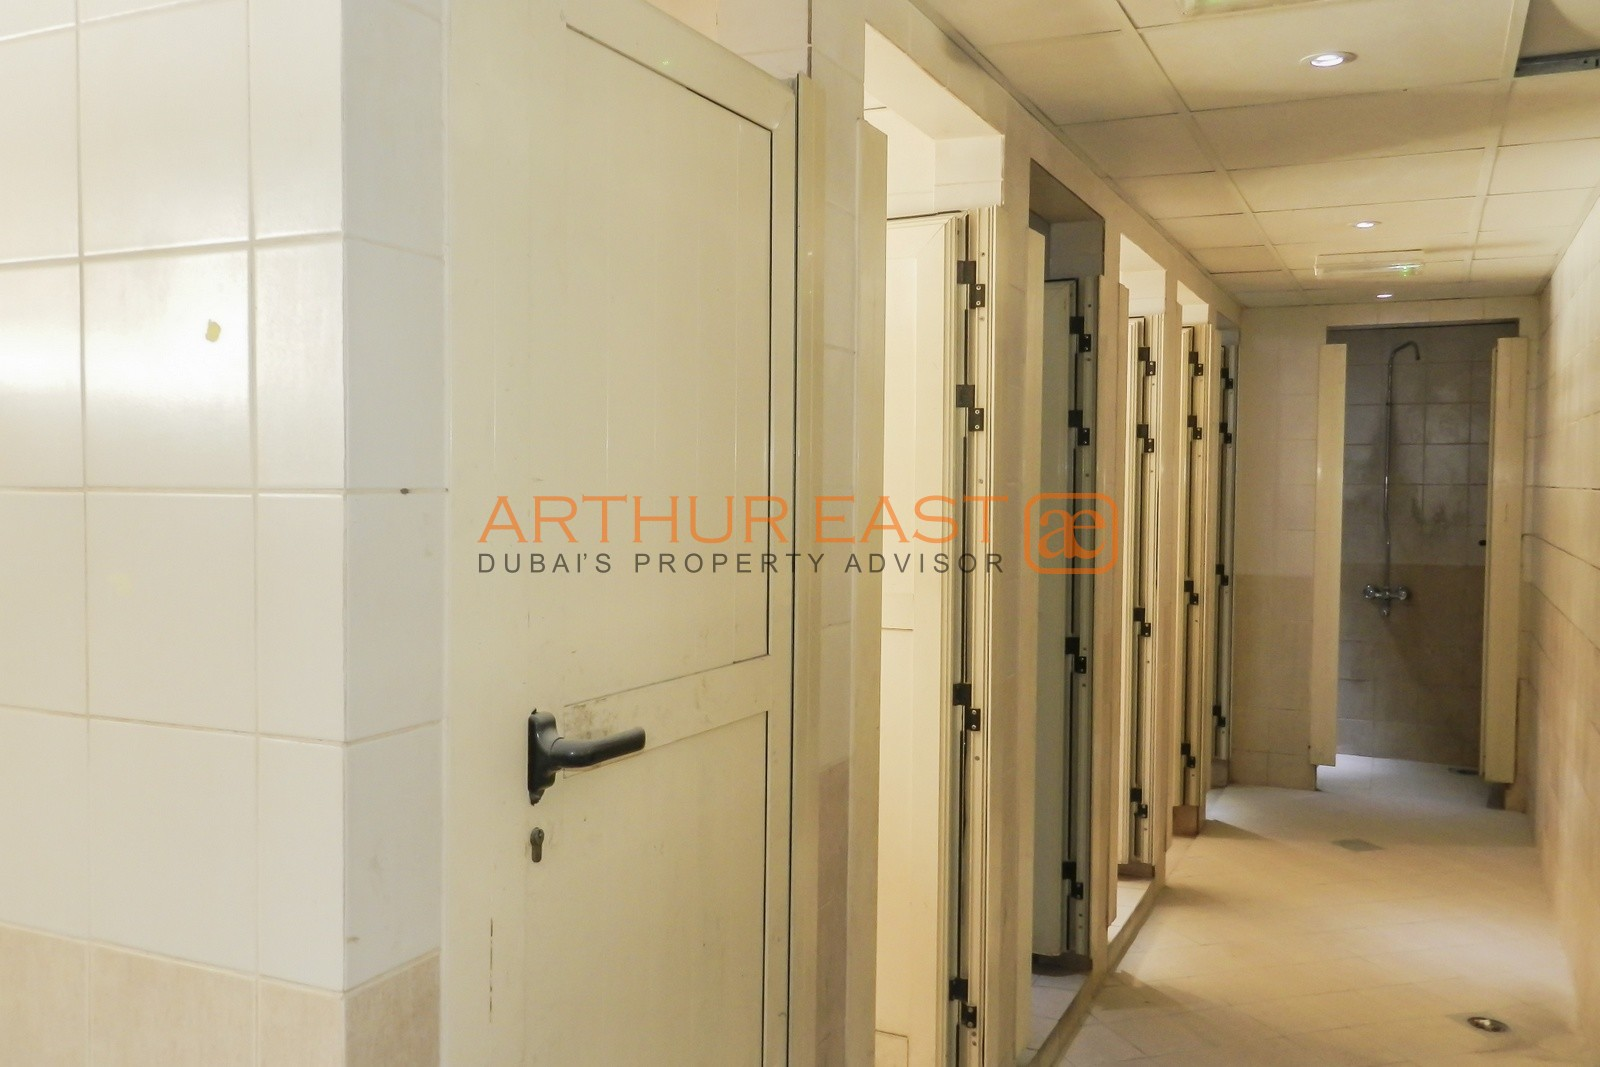 cheapest-jebel-ali-rooms-aed-2520room